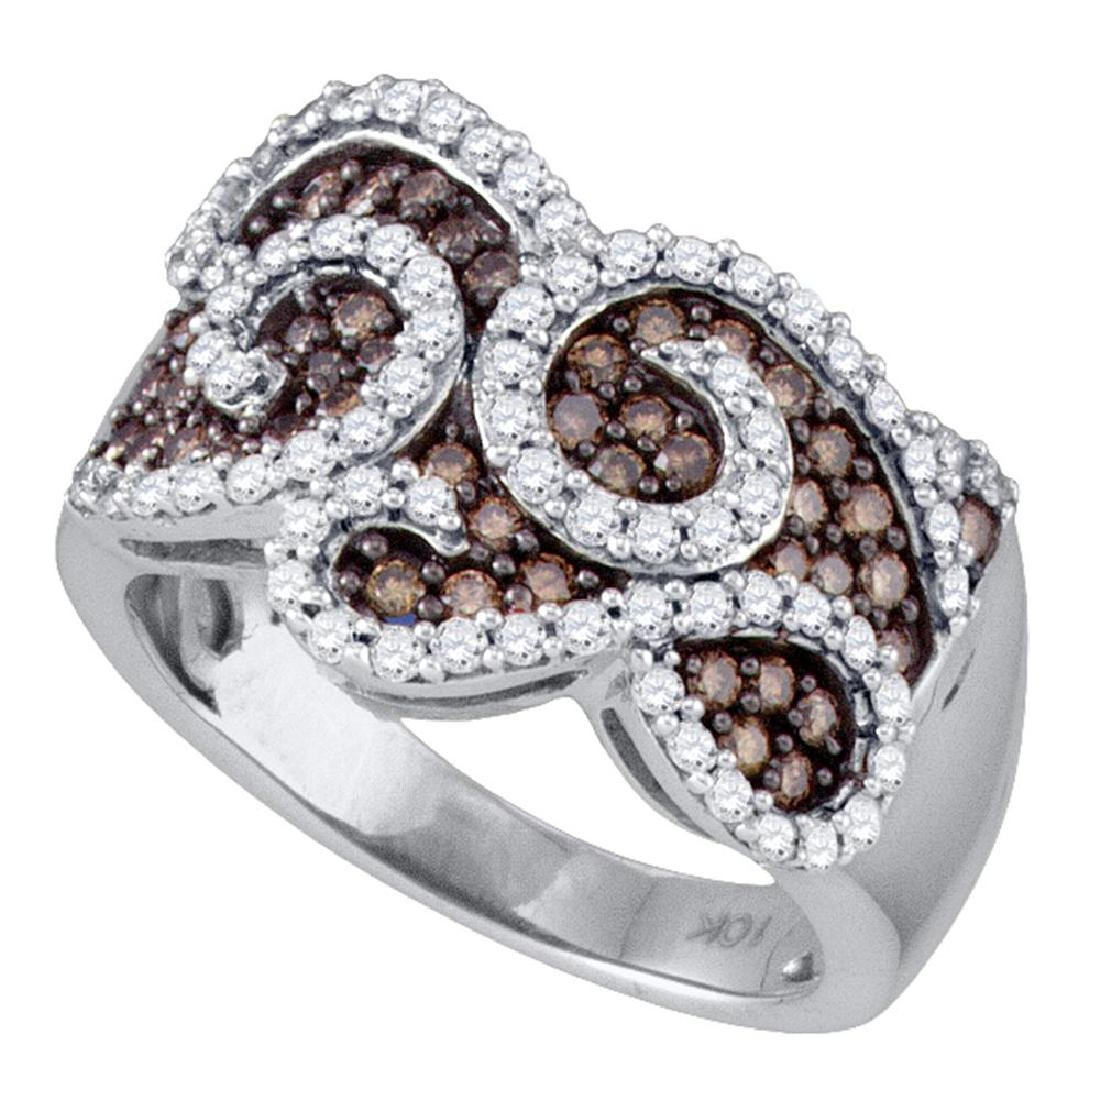 1 CTW Cognac-brown Color Diamond Swirled Cocktail Ring